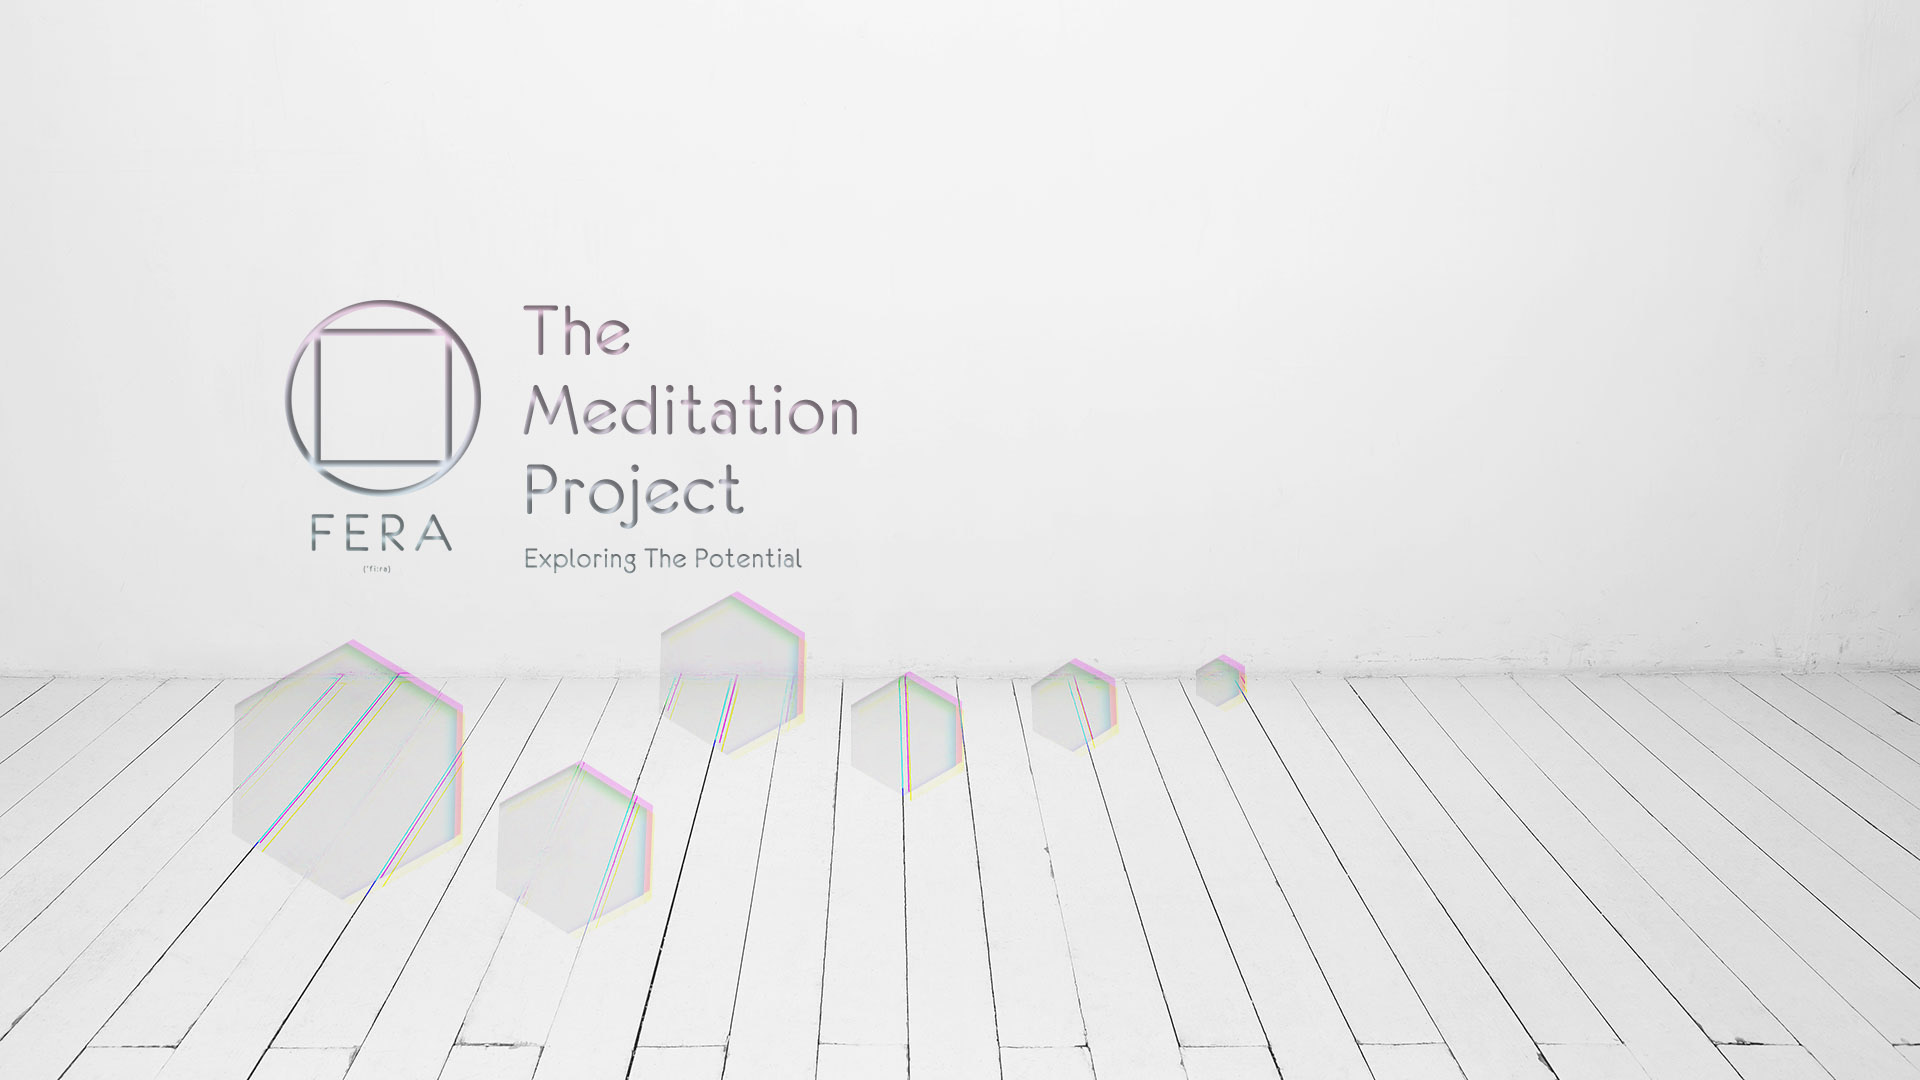 TheMeditationProject.jpg